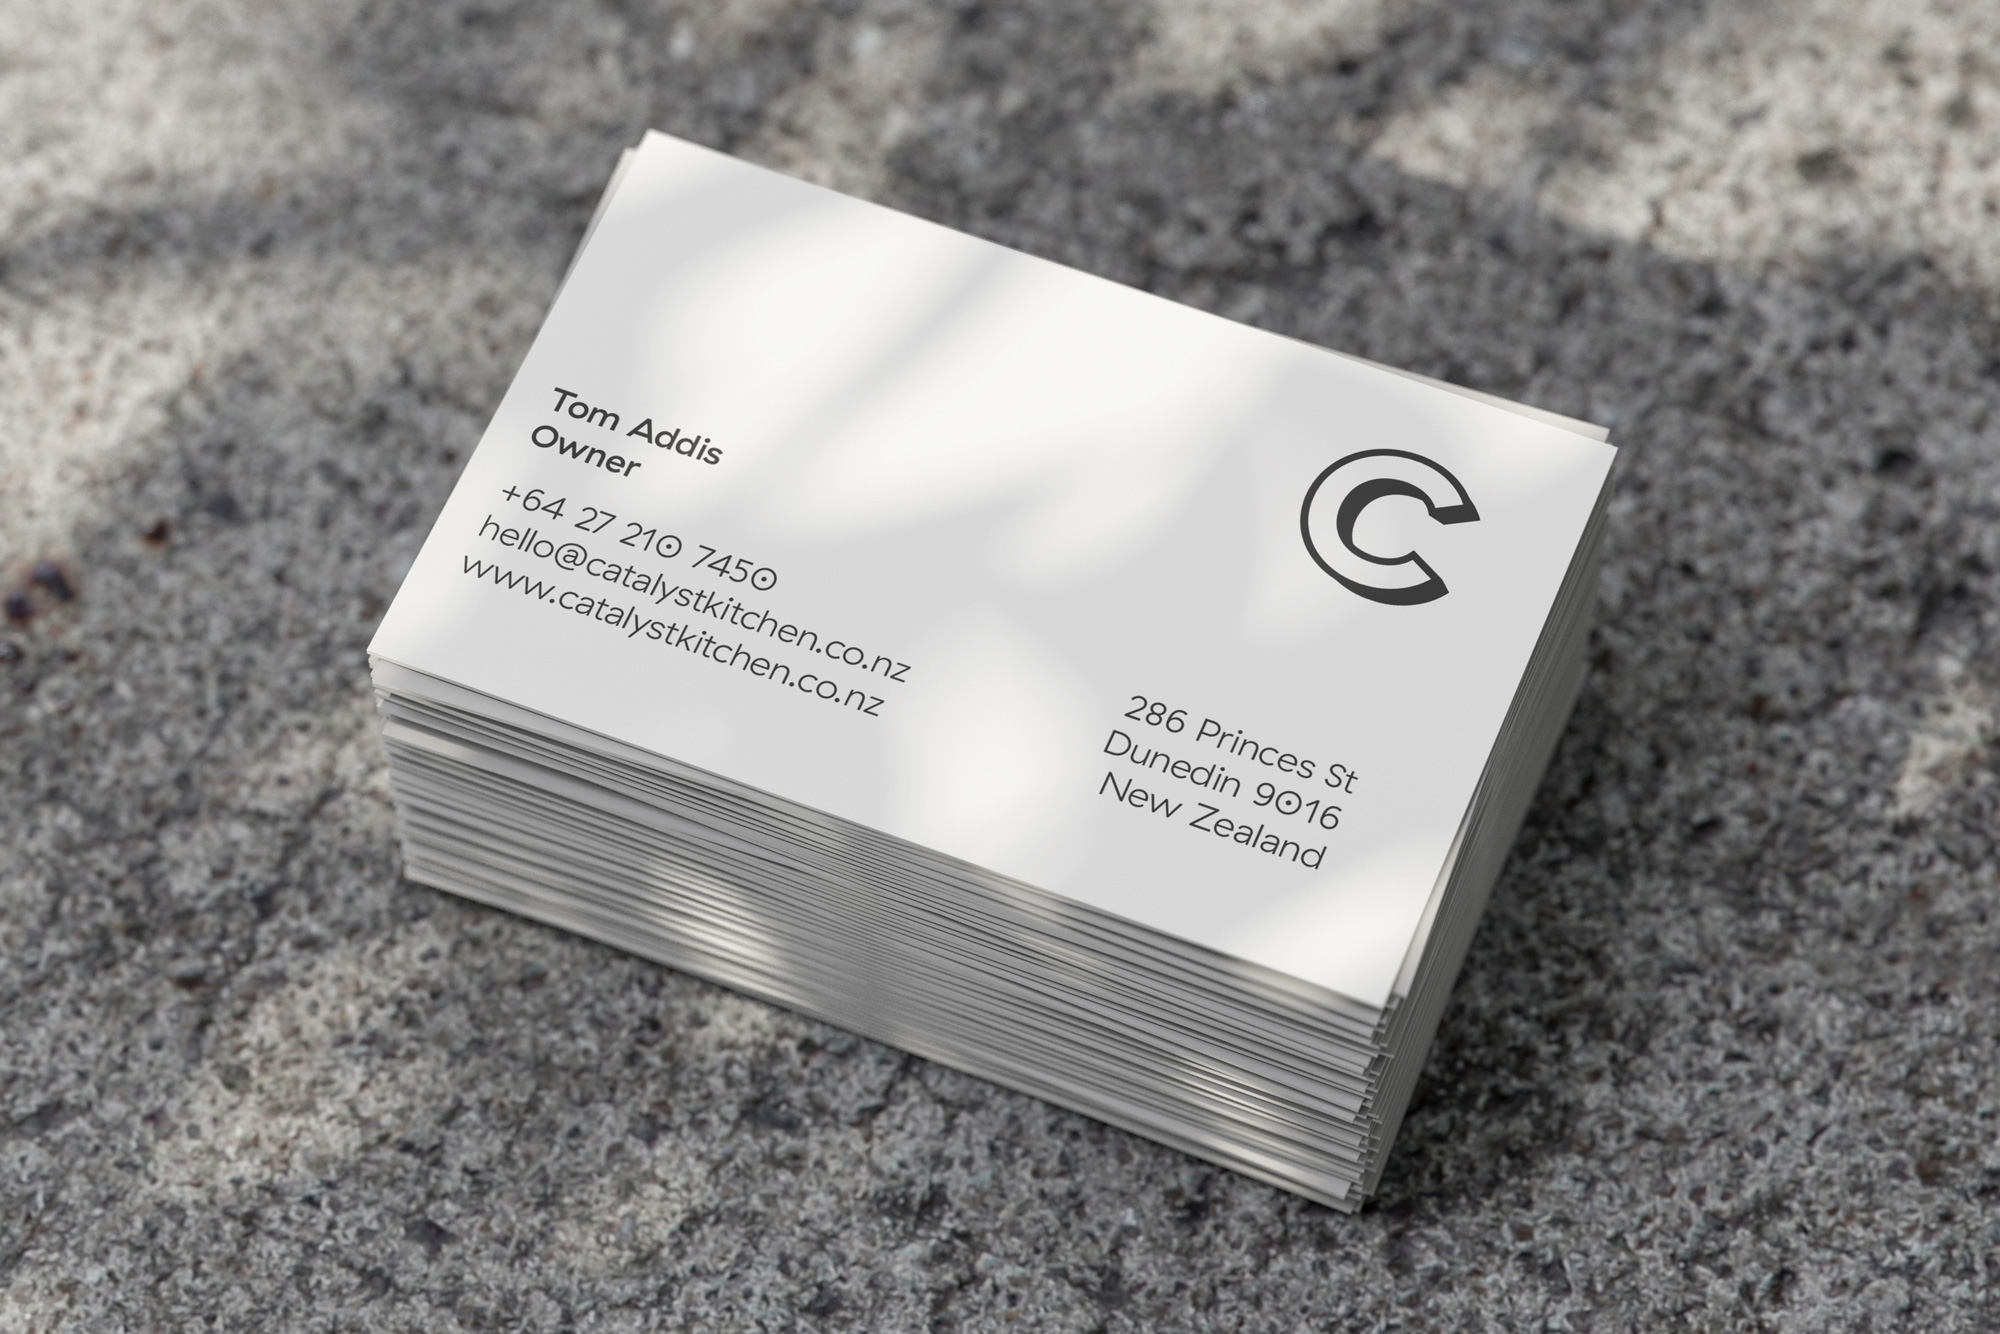 Catalyst - Business cards on concrete